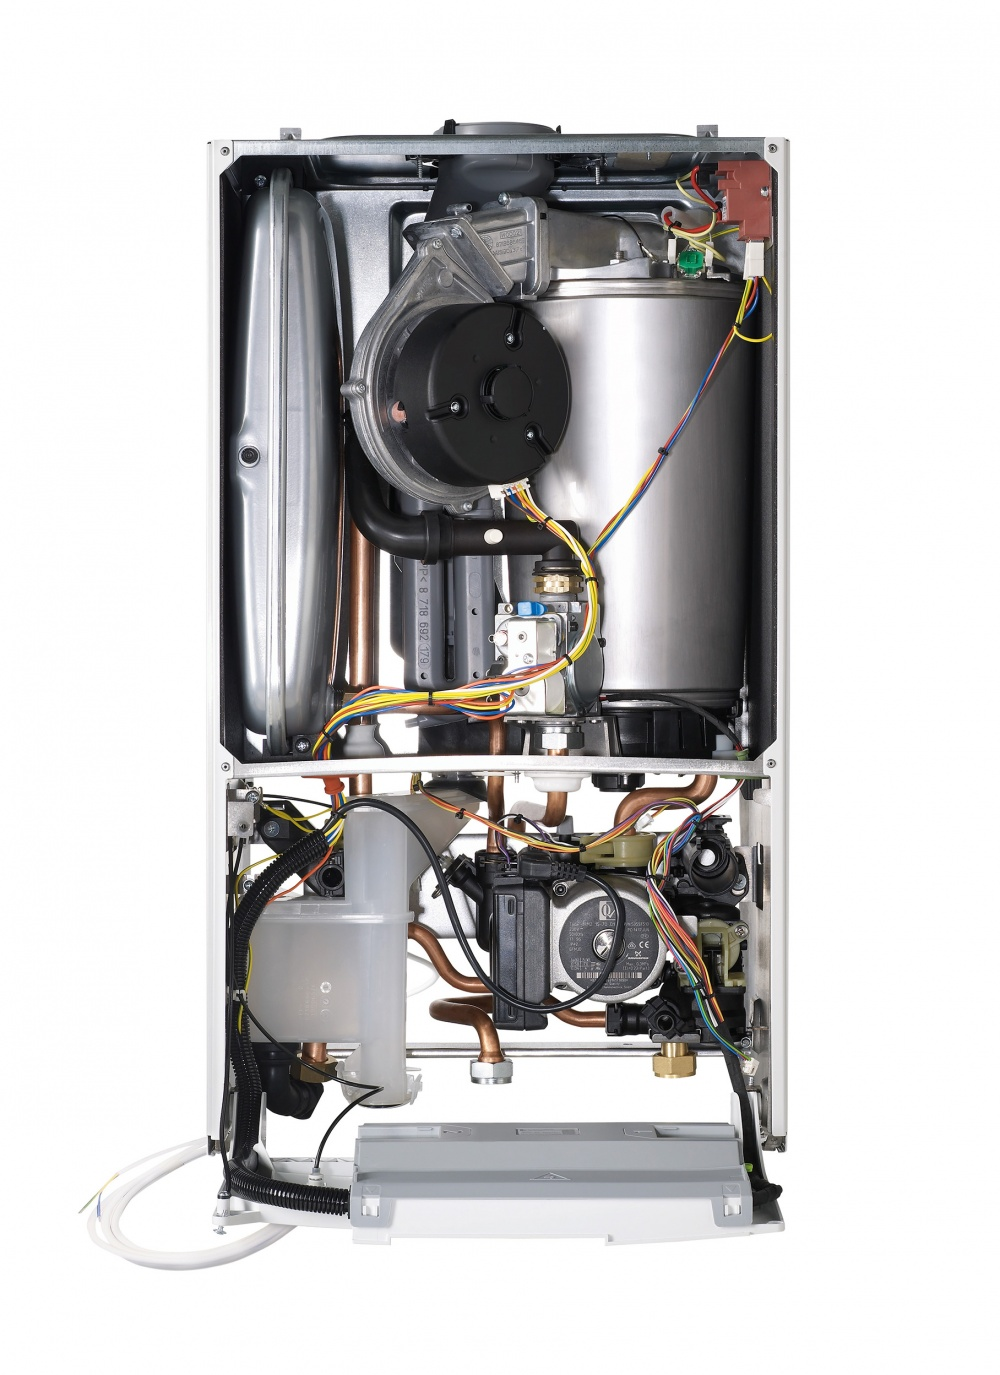 Wiring Diagrams Worcester Bosch Group Central Heating Boiler Diagram Internal View Gas System